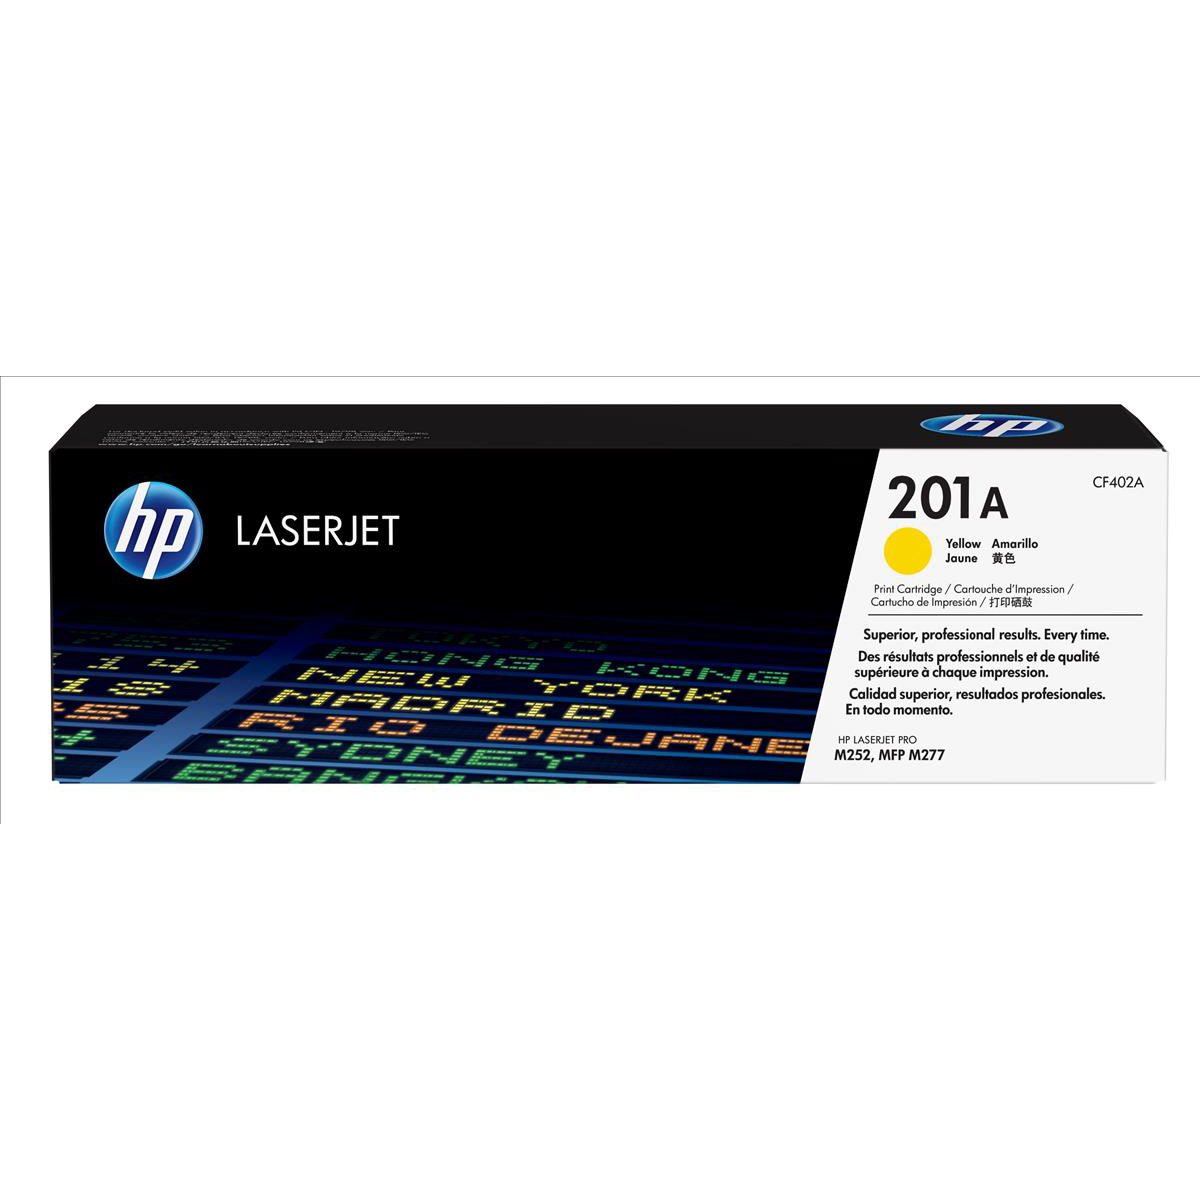 Hewlett Packard [HP] 201A LaserJet Toner Cartridges Page Life 1400pp Yellow Ref CF402A